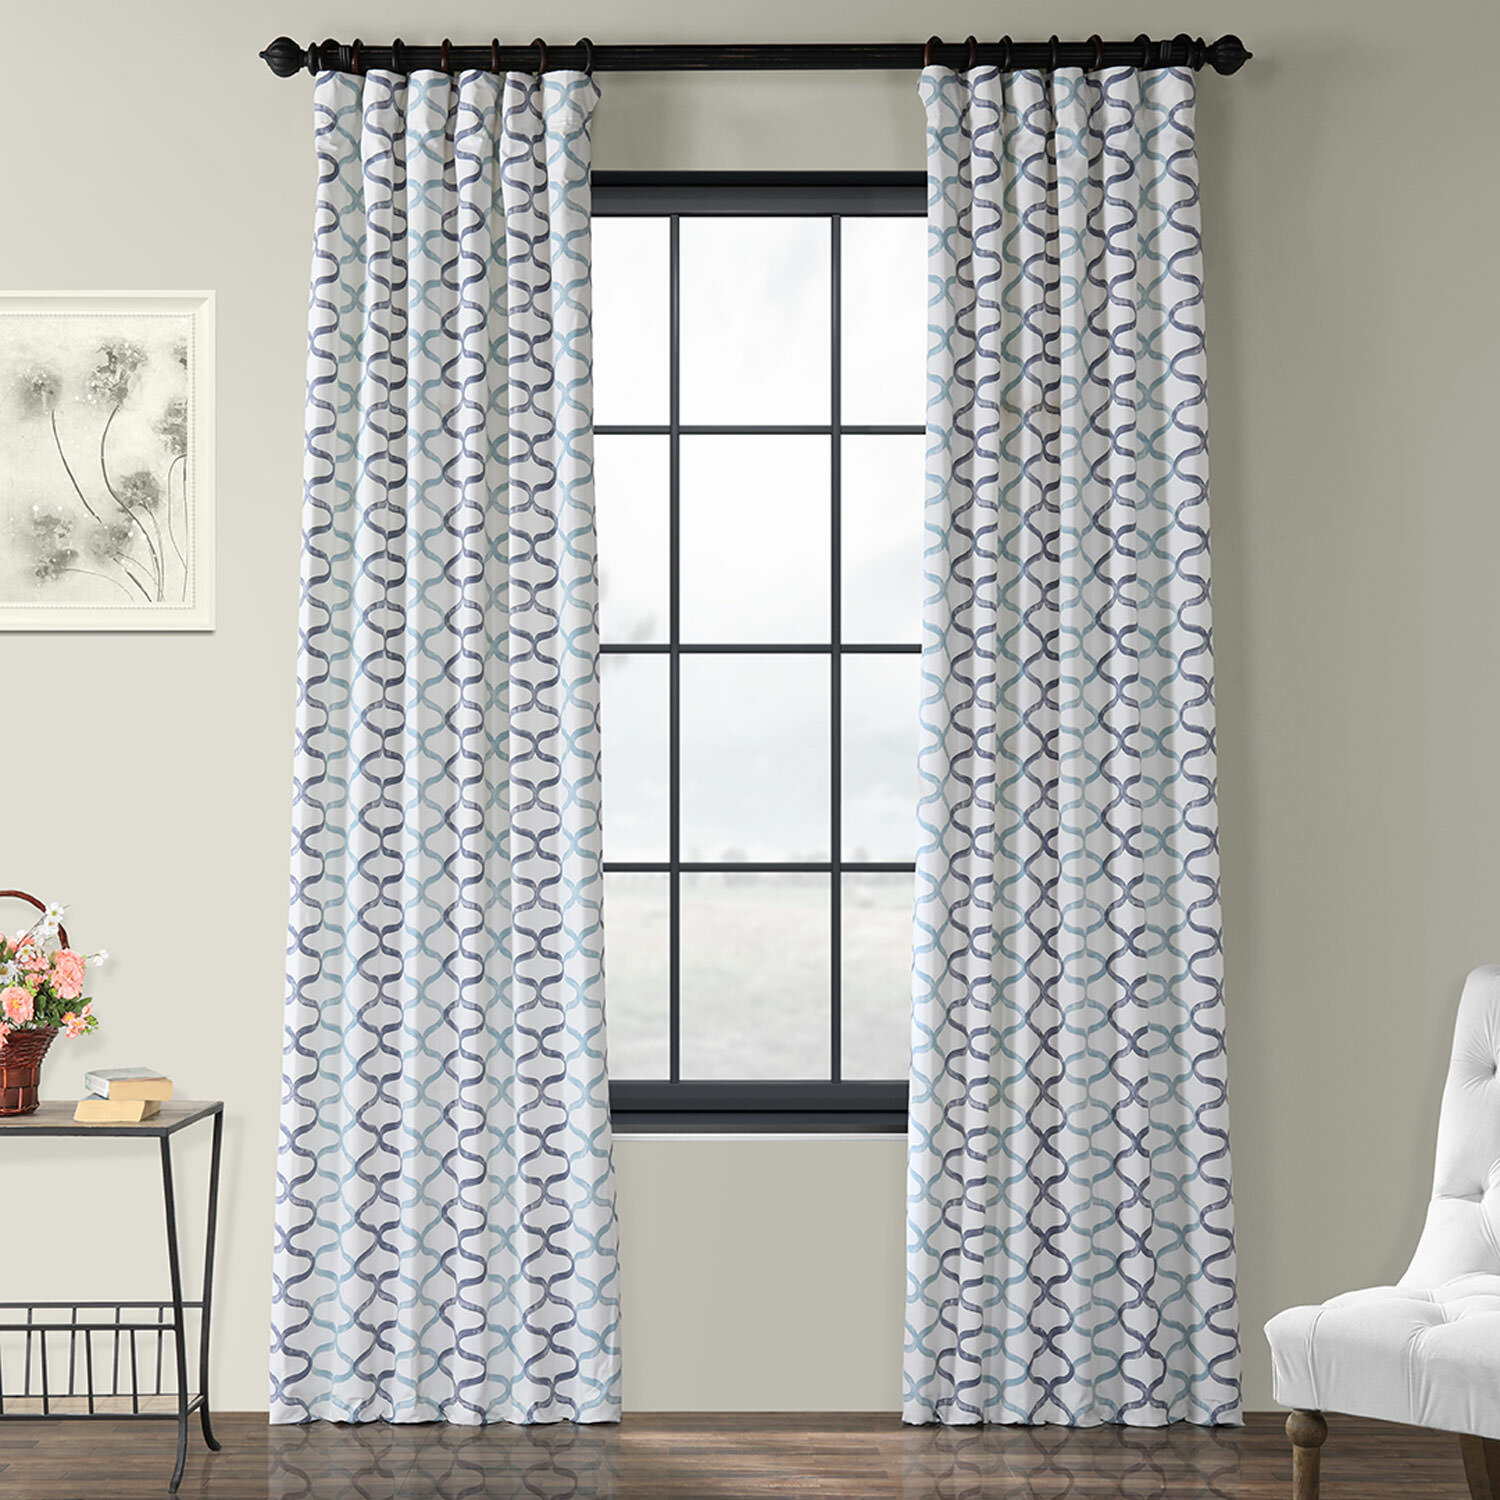 Balfour Graphic Printed Cotton Rod Pocket Single Curtain Panel For Fretwork Print Pattern Single Curtain Panels (View 18 of 20)